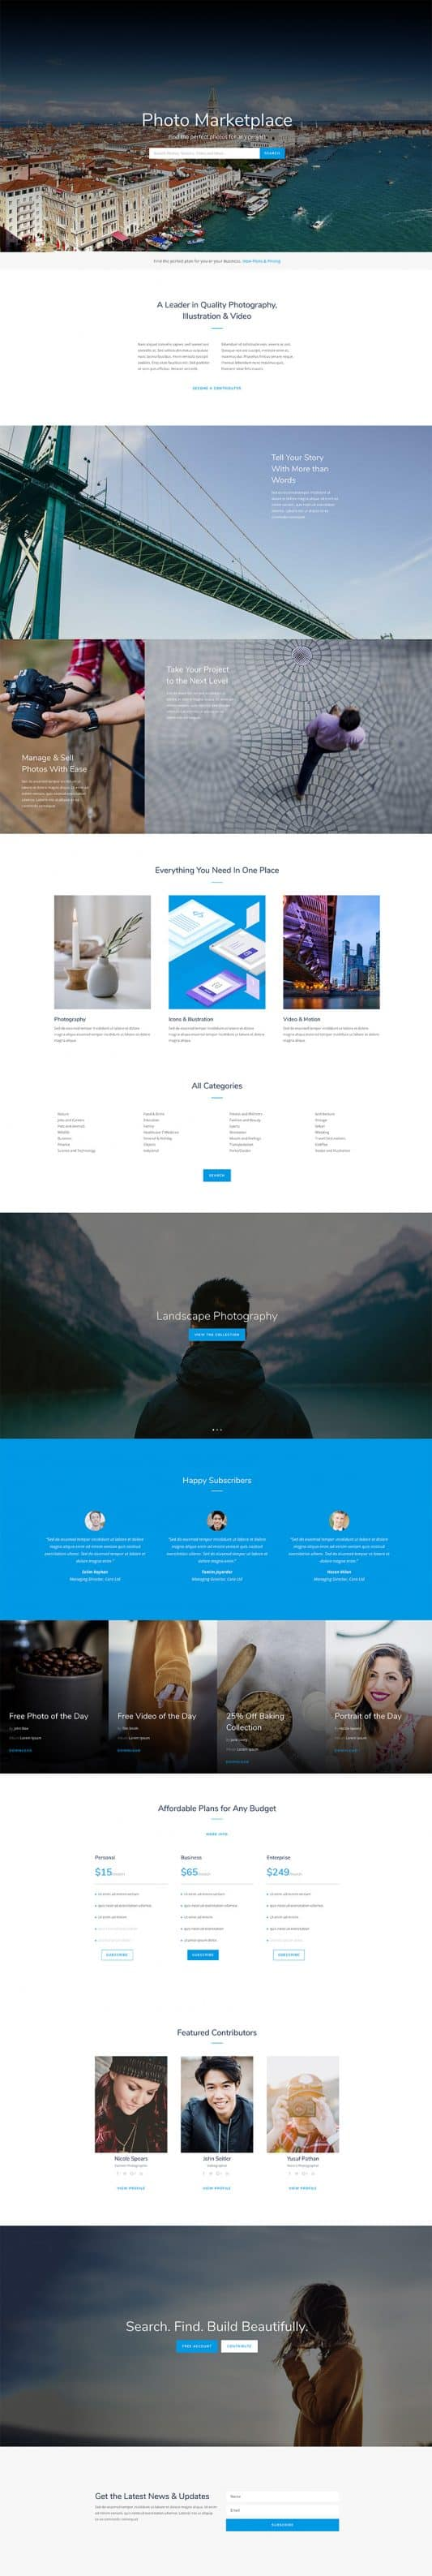 The Photo Marketplace Page Style: Homepage Design 1